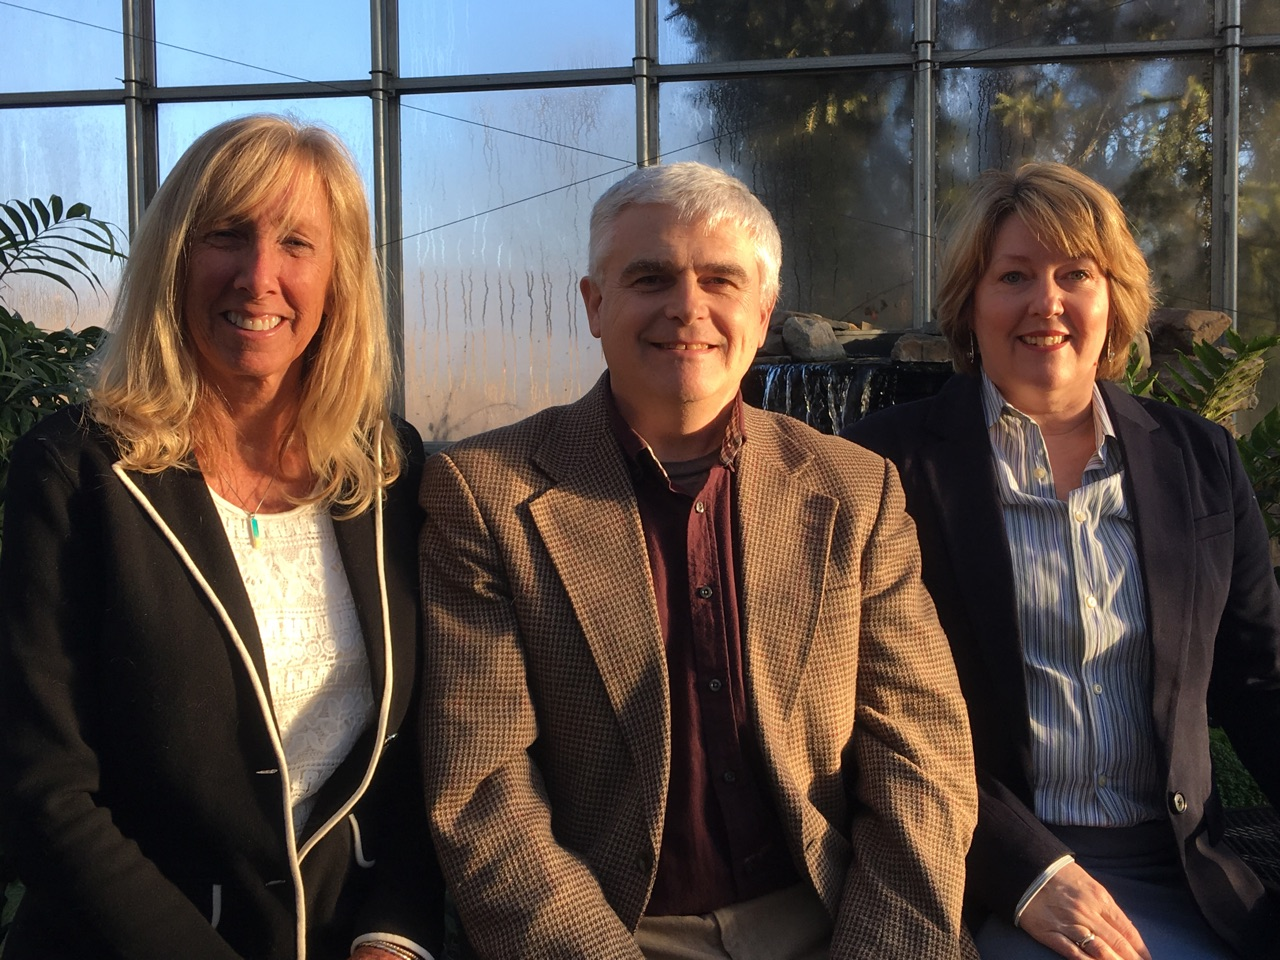 From left to right: Barb Groff, Lee Bryan, and Holly Poulin